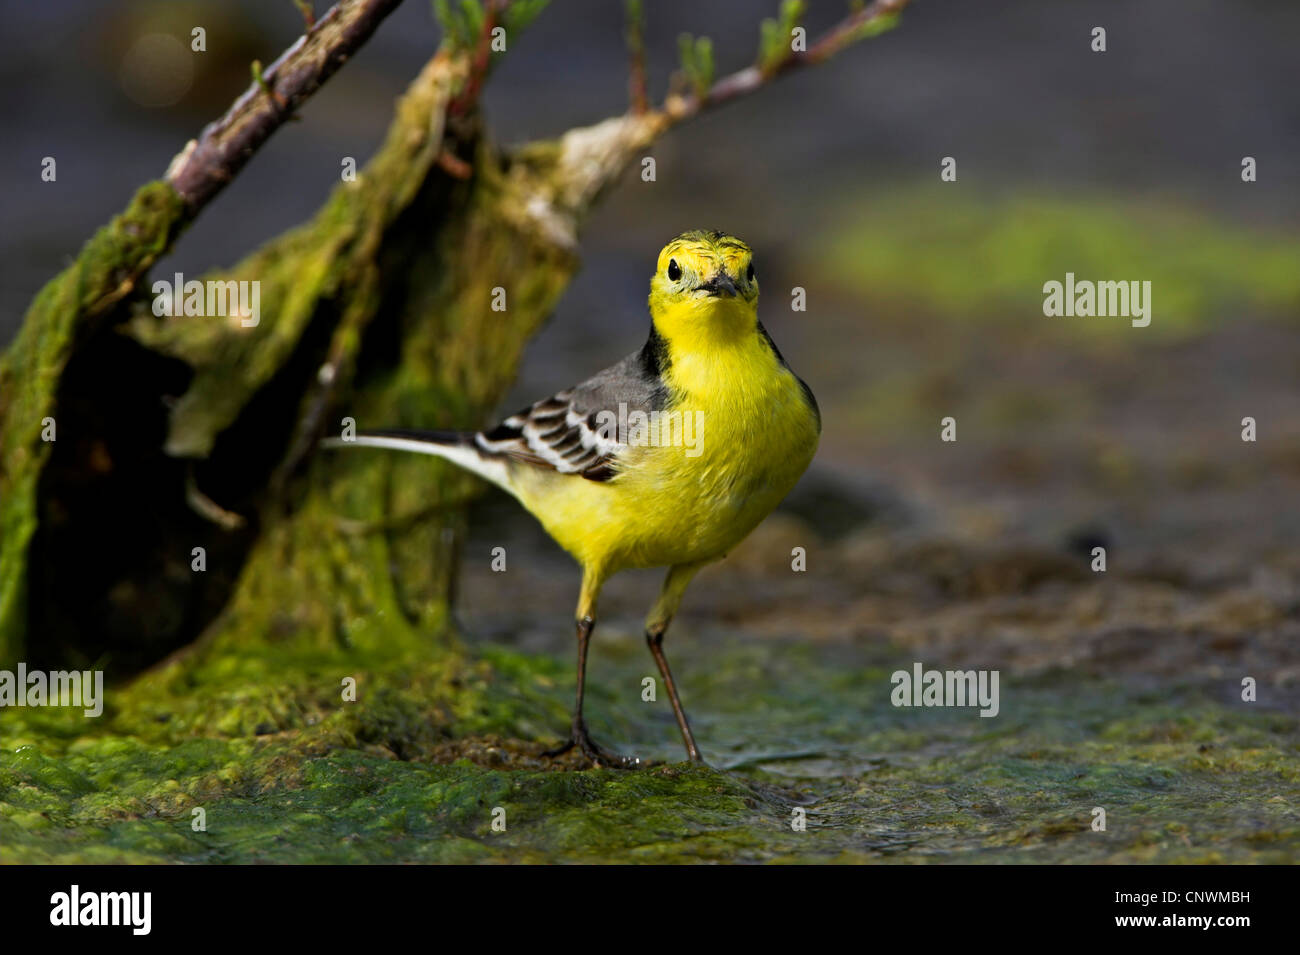 citrine wagtail (Motacilla citreola), standing in a swamp, Greece, Lesbos - Stock Image